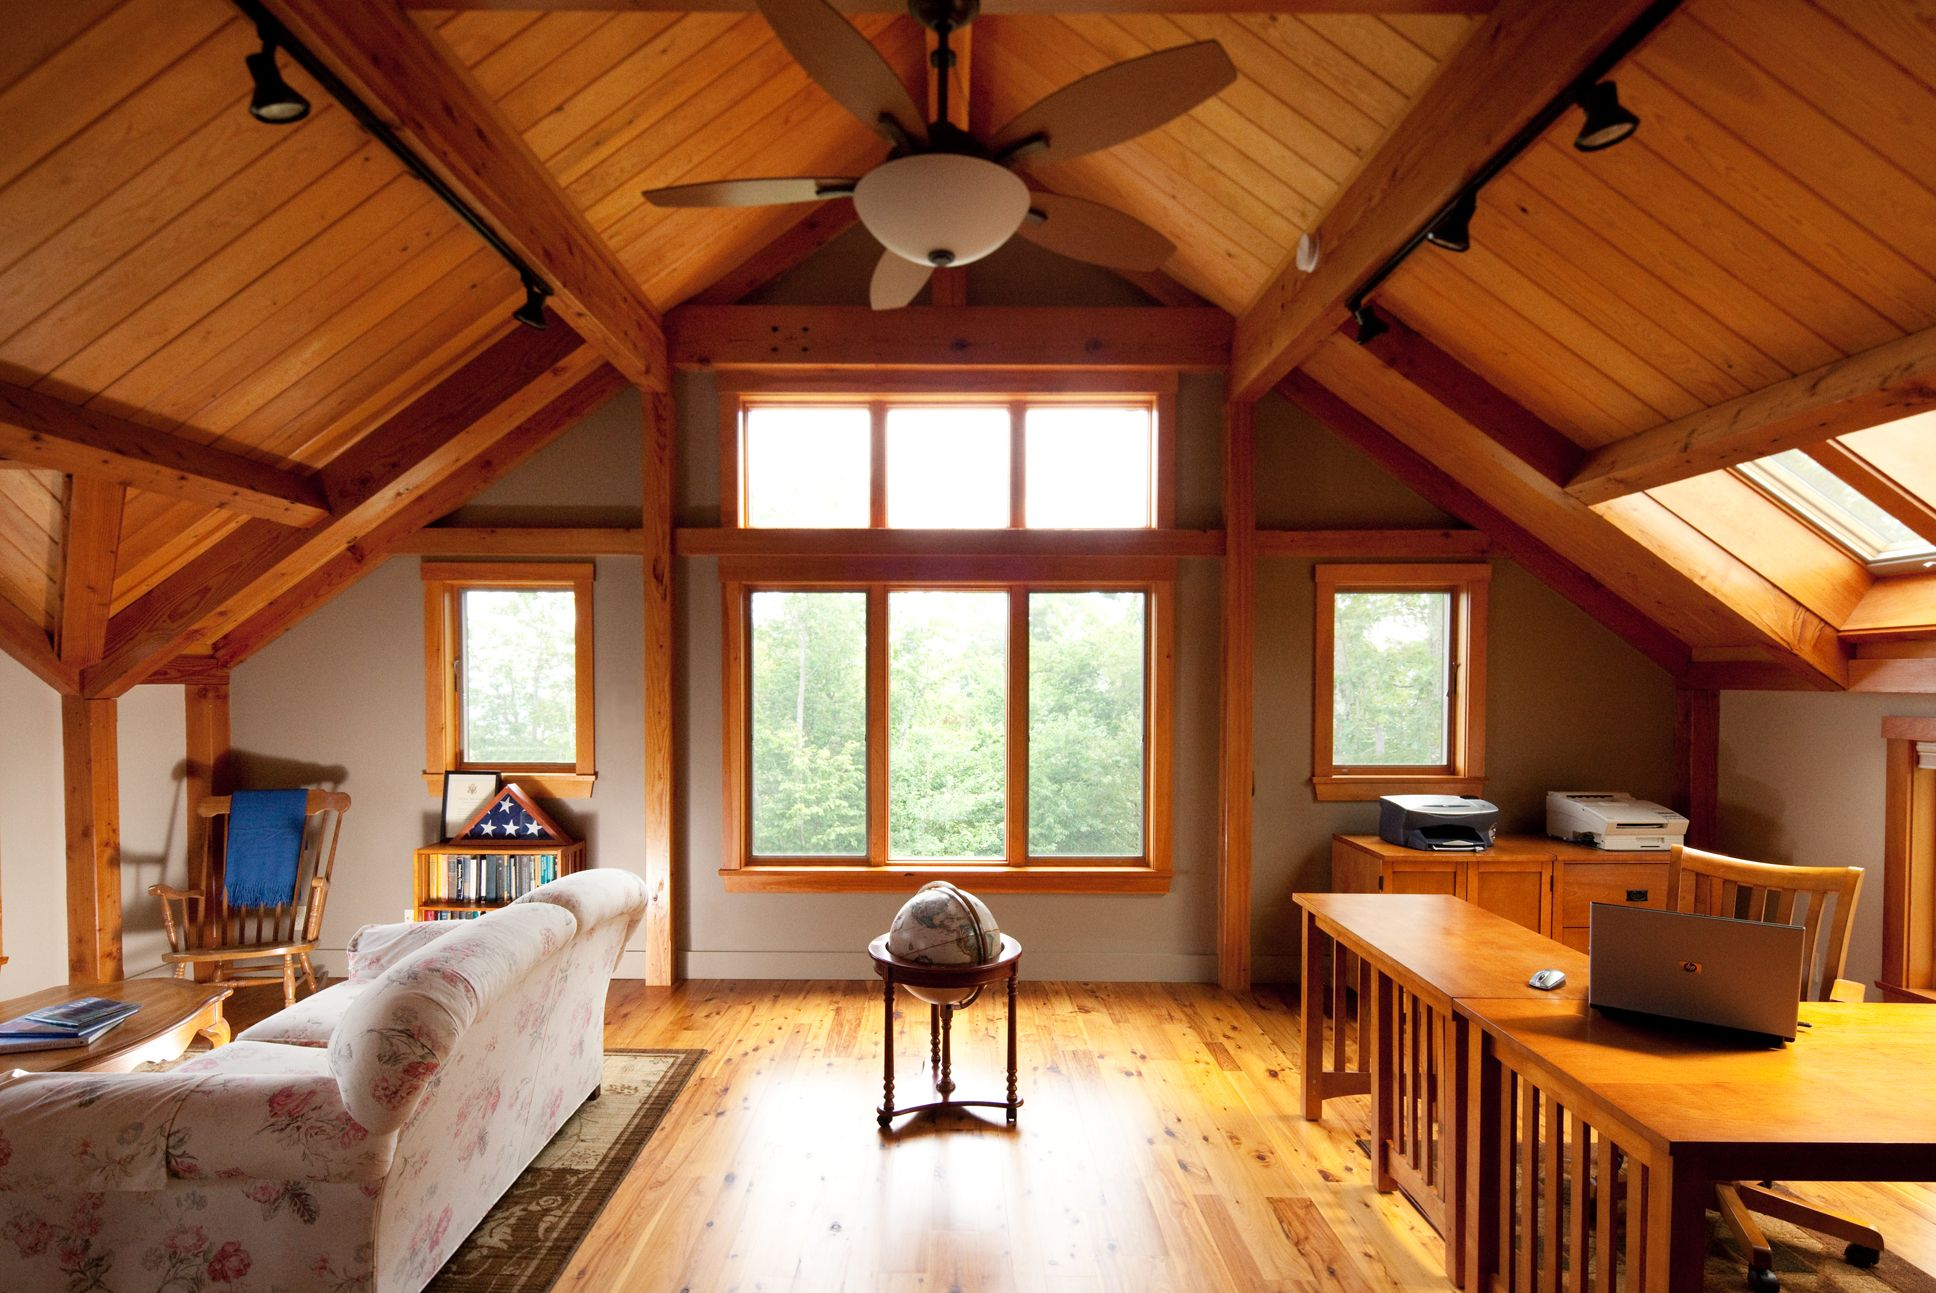 barn loftLoft Apartment | Barn Loft | Barn apartment, Barn ...